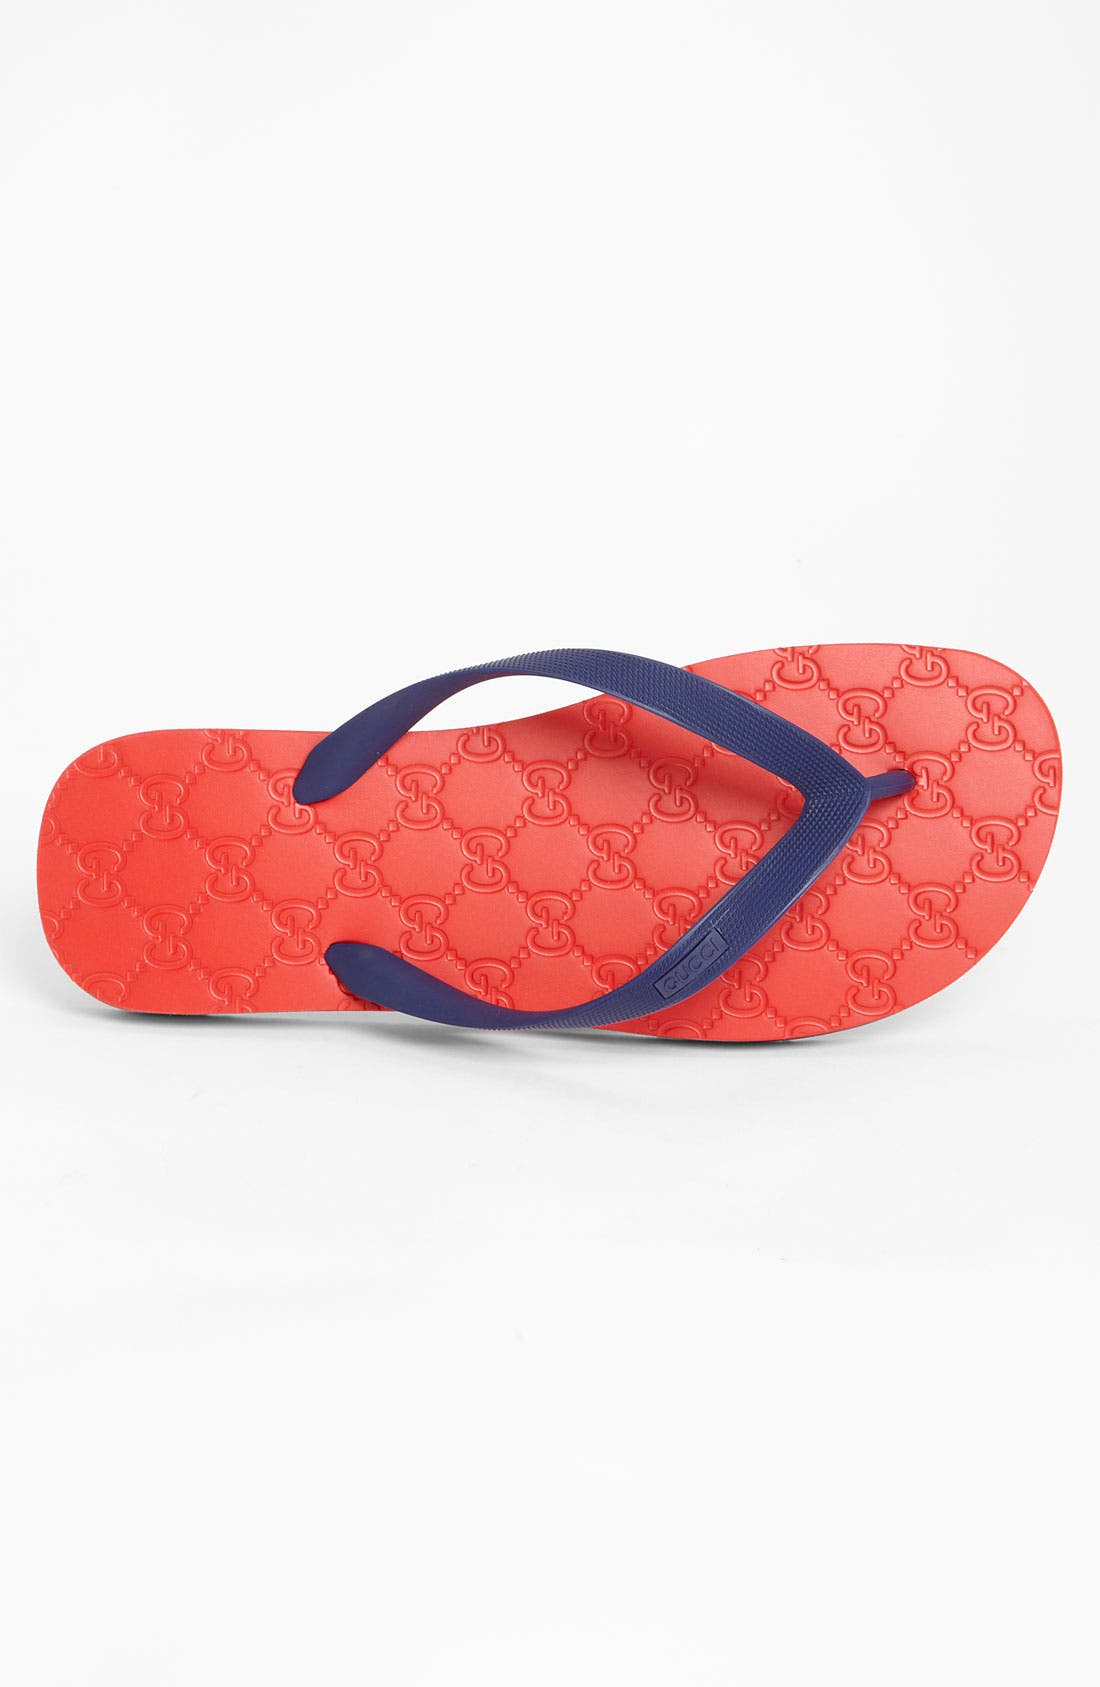 Alternate Image 3  - Gucci 'Bedlam' Flip Flop